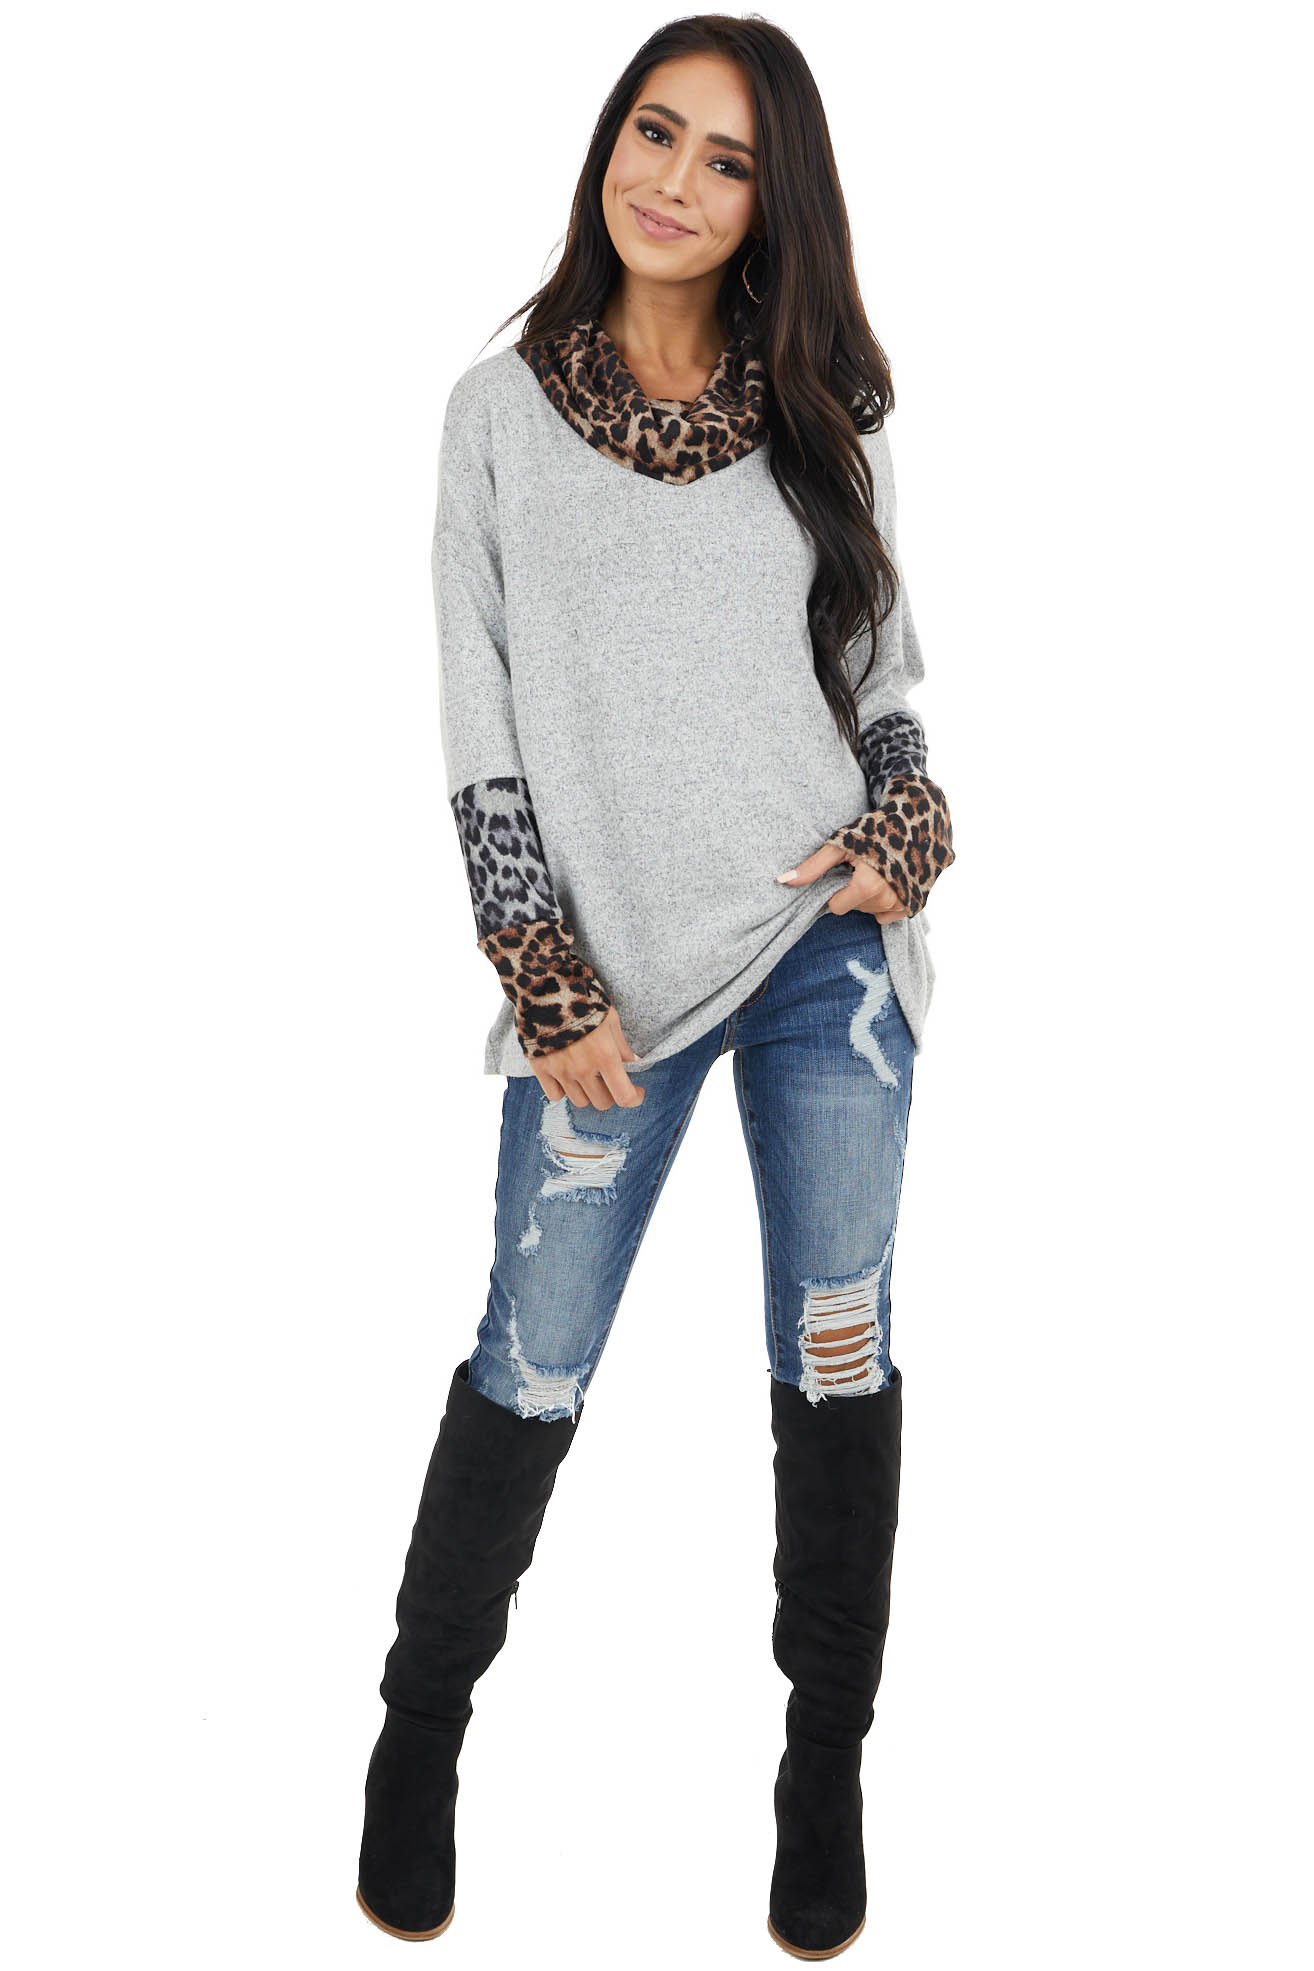 Heather Grey Leopard Print Long Sleeve Top with Cowl Neck